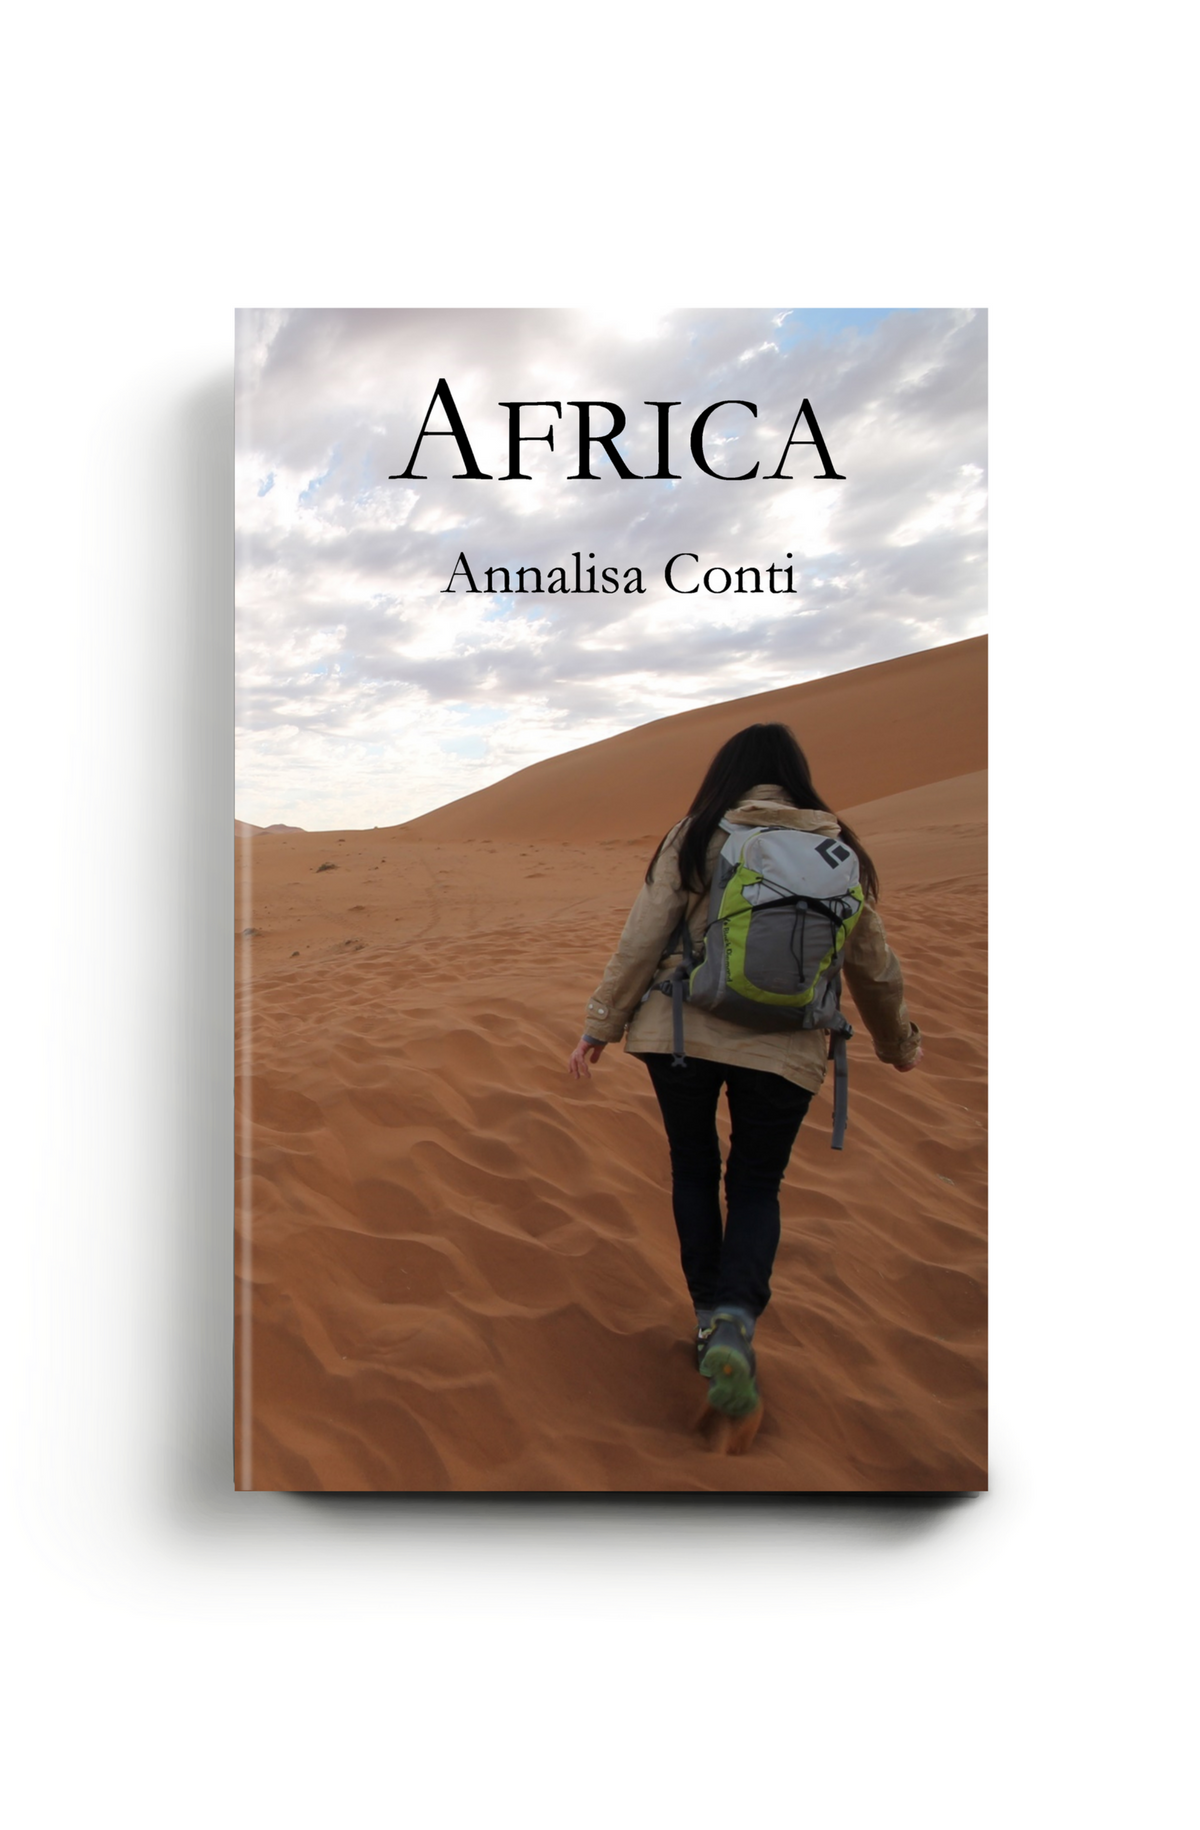 Africa by Annalisa Conti